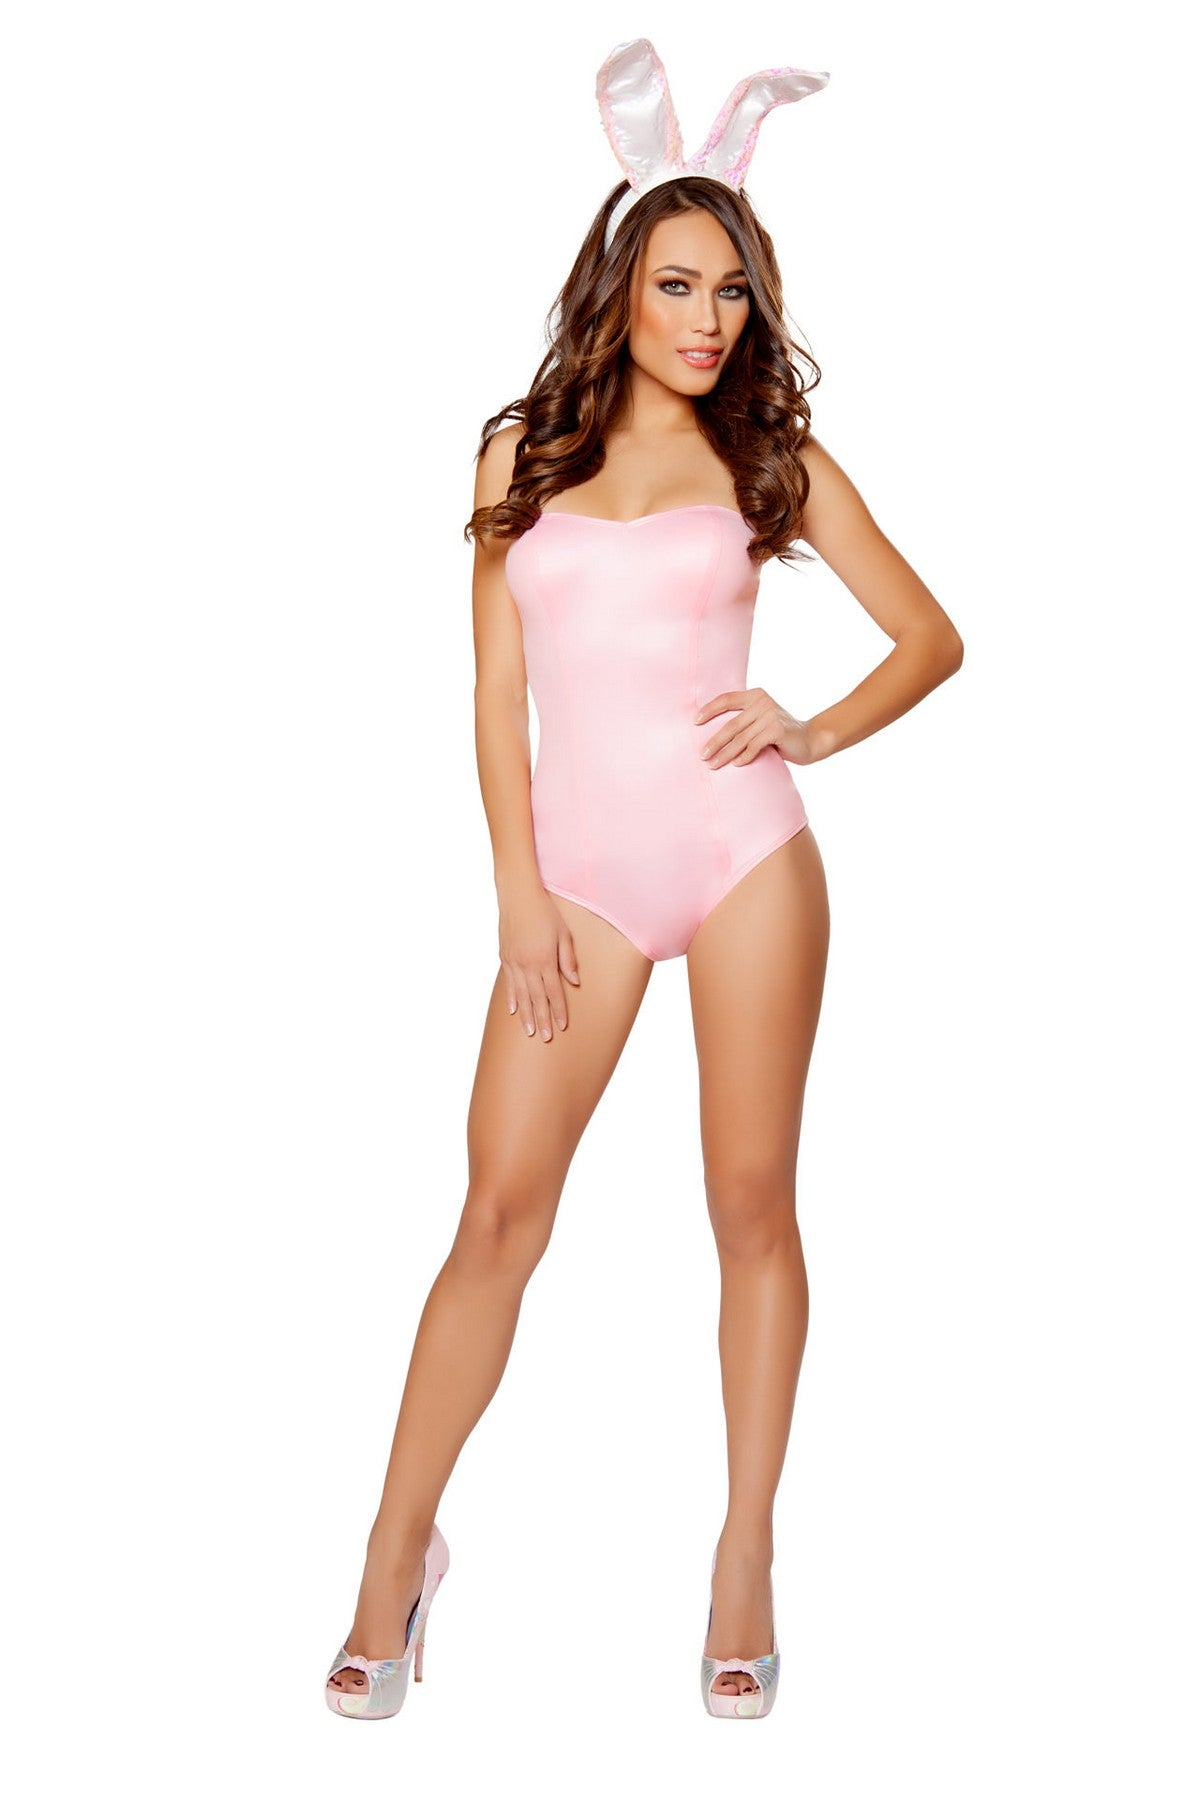 Pinky Playful Bunny Costume Set